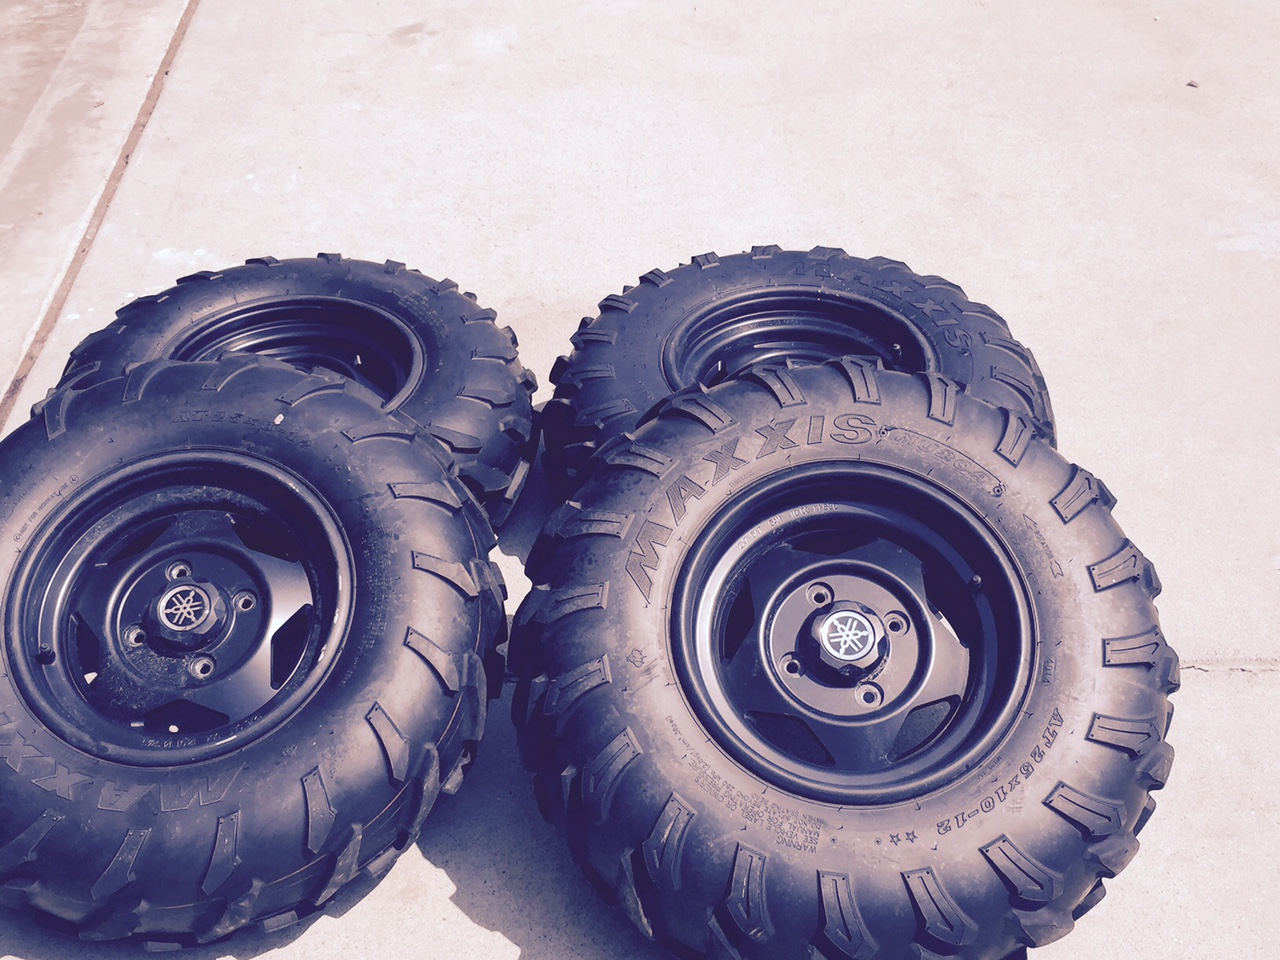 D Grizzly Tires Rims Tires on Yamaha Grizzly 700 Special Edition